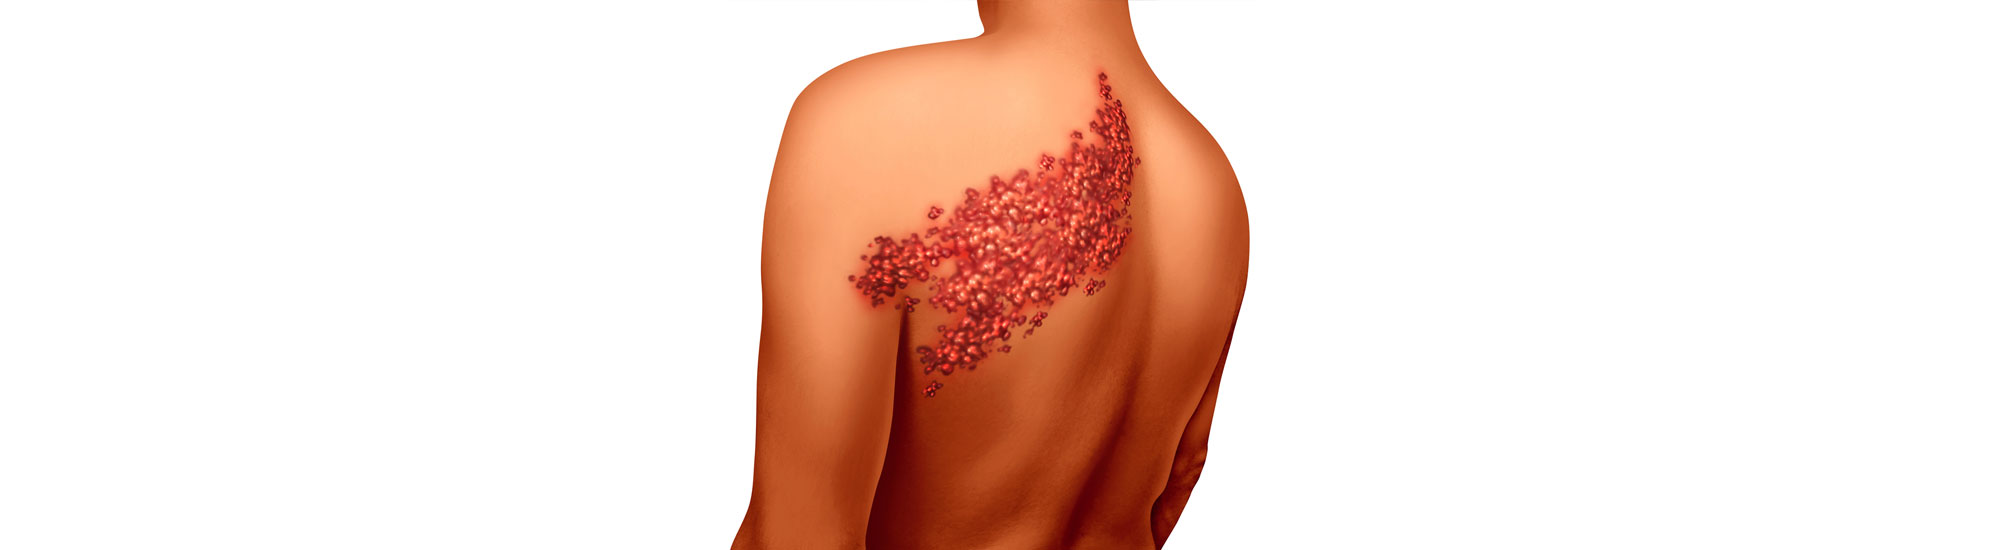 Ayurvedic treatment for Shingles Causes